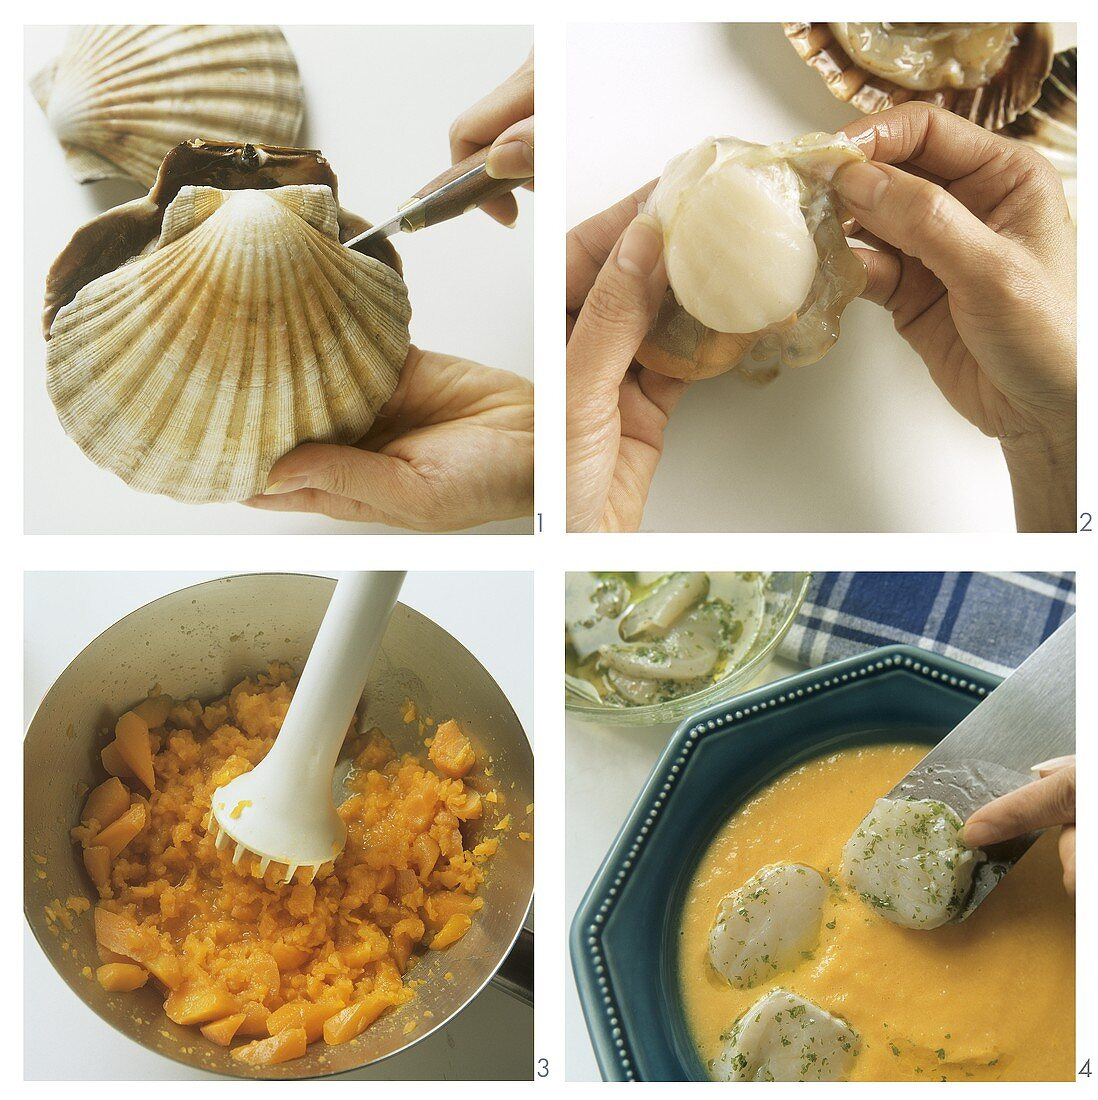 Making carrot soup with scallops